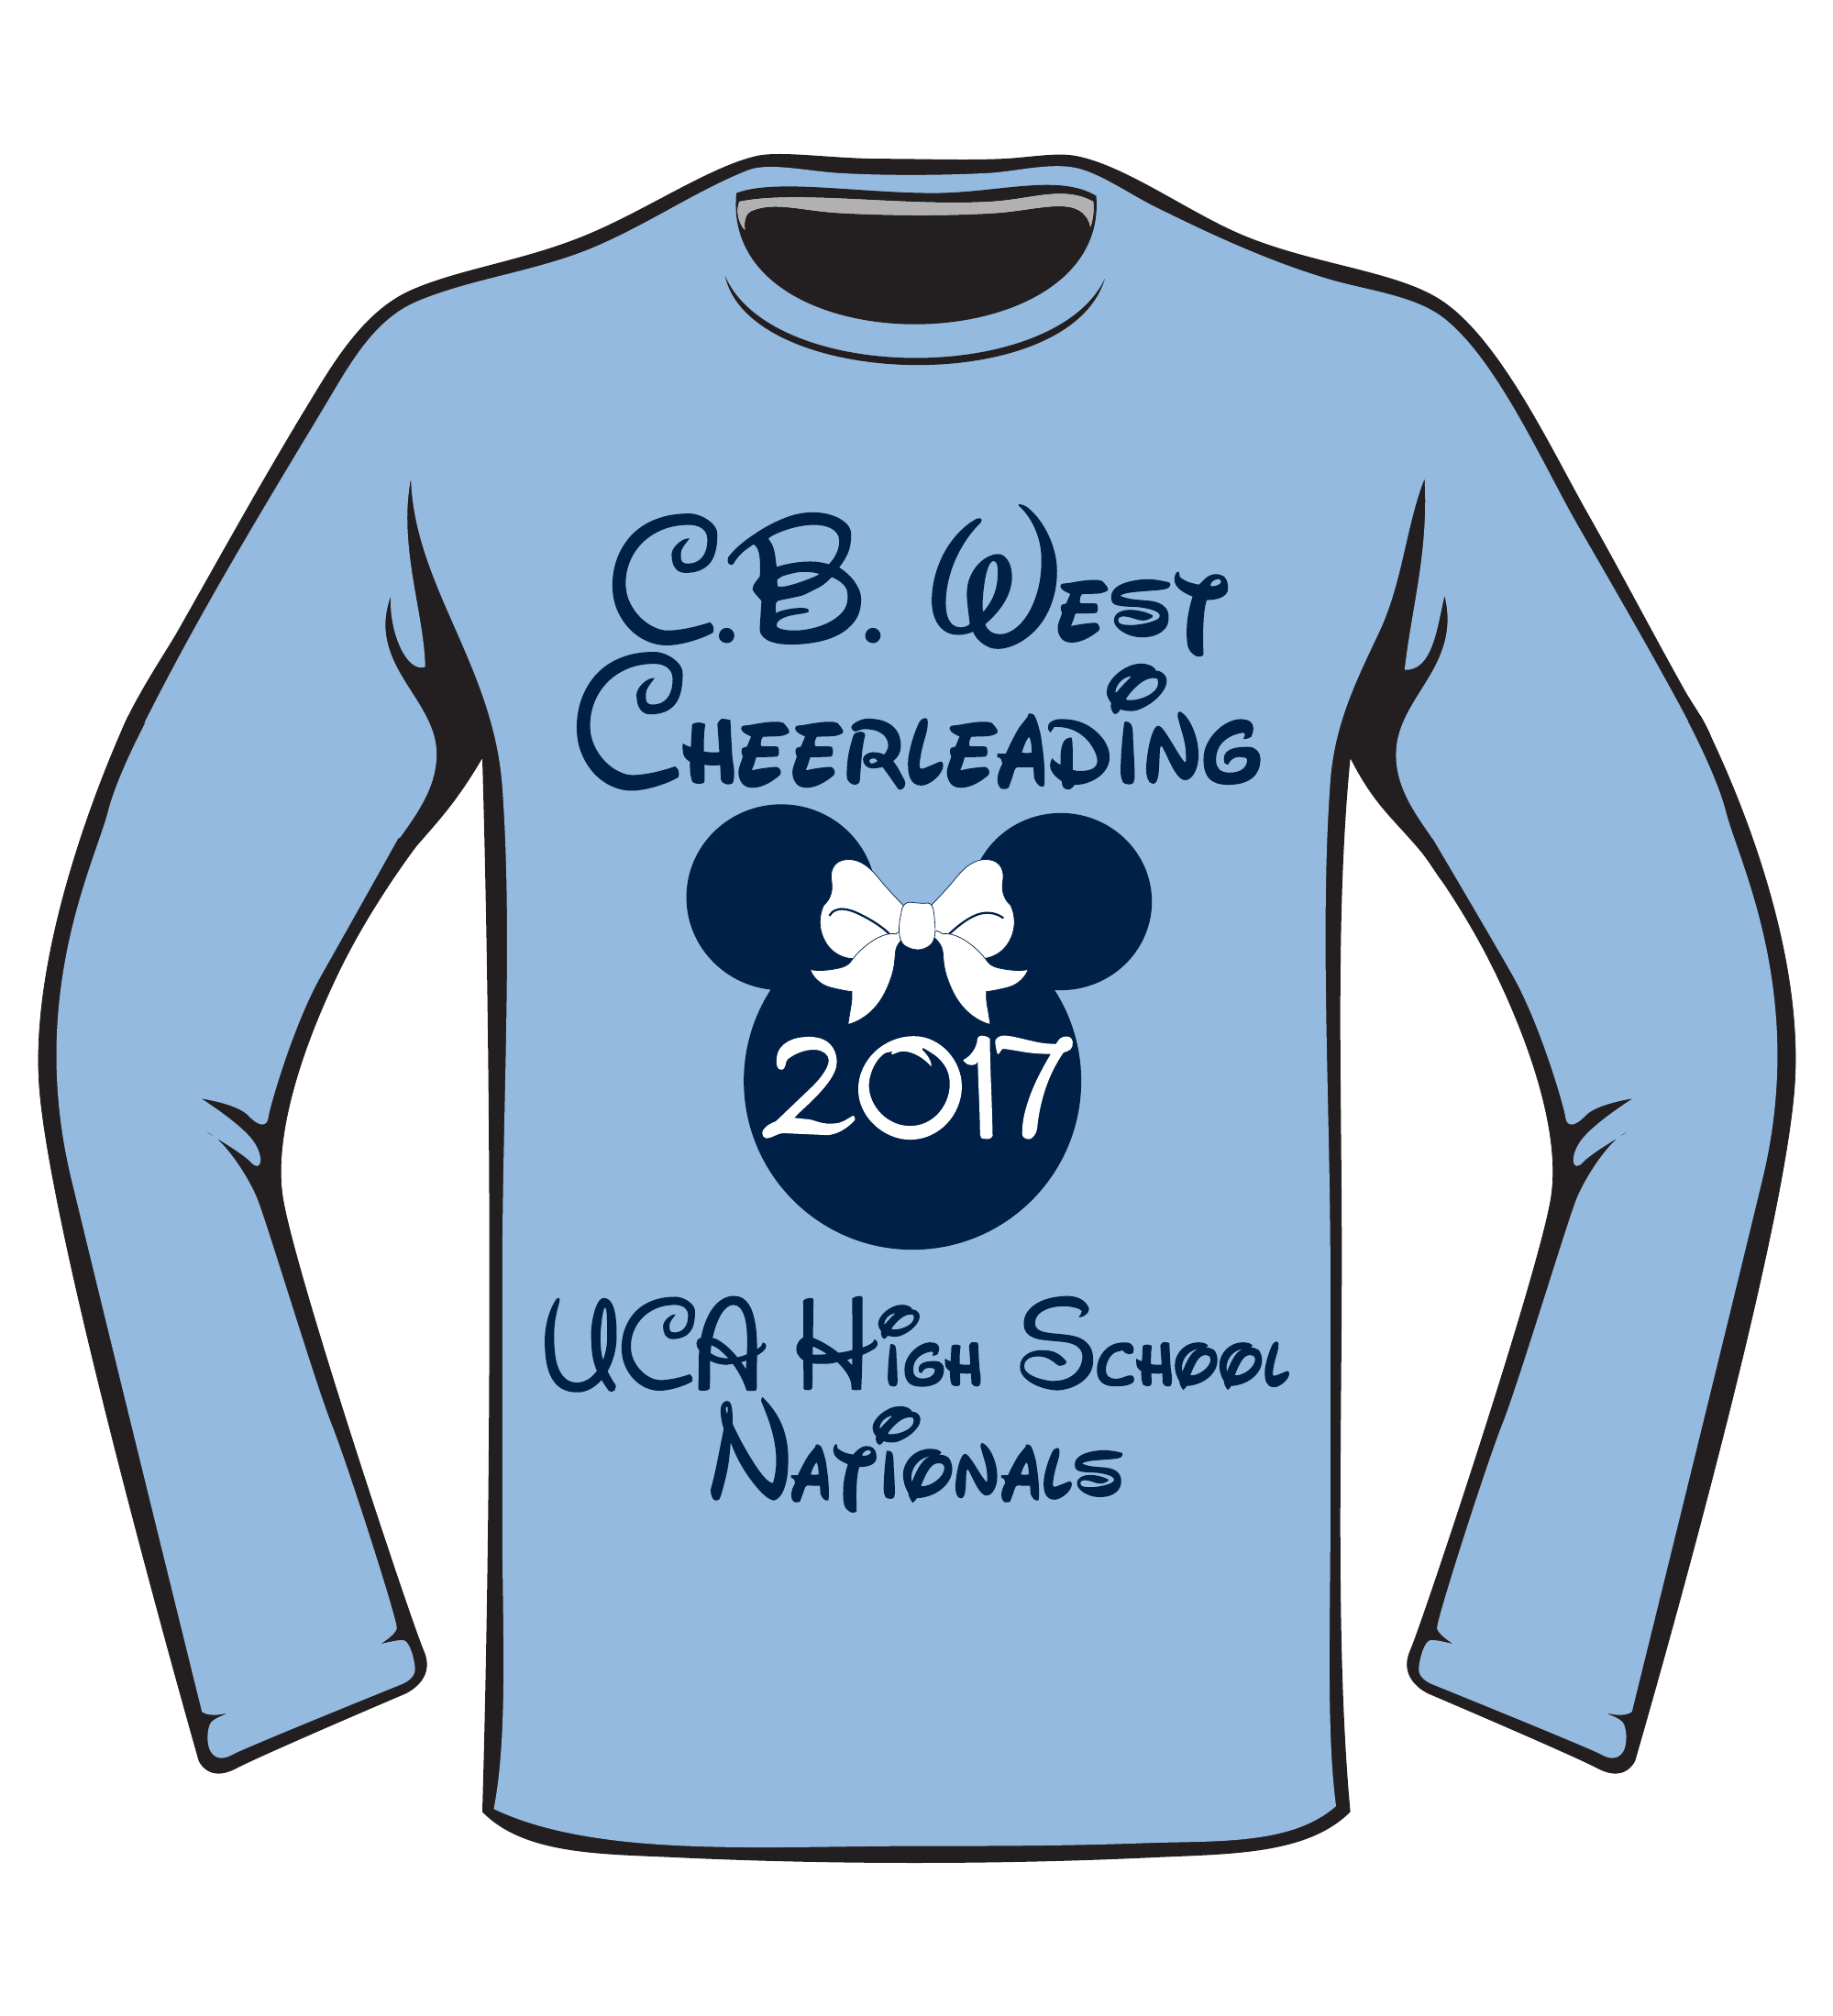 CB West Cheerleading Full Front 37088